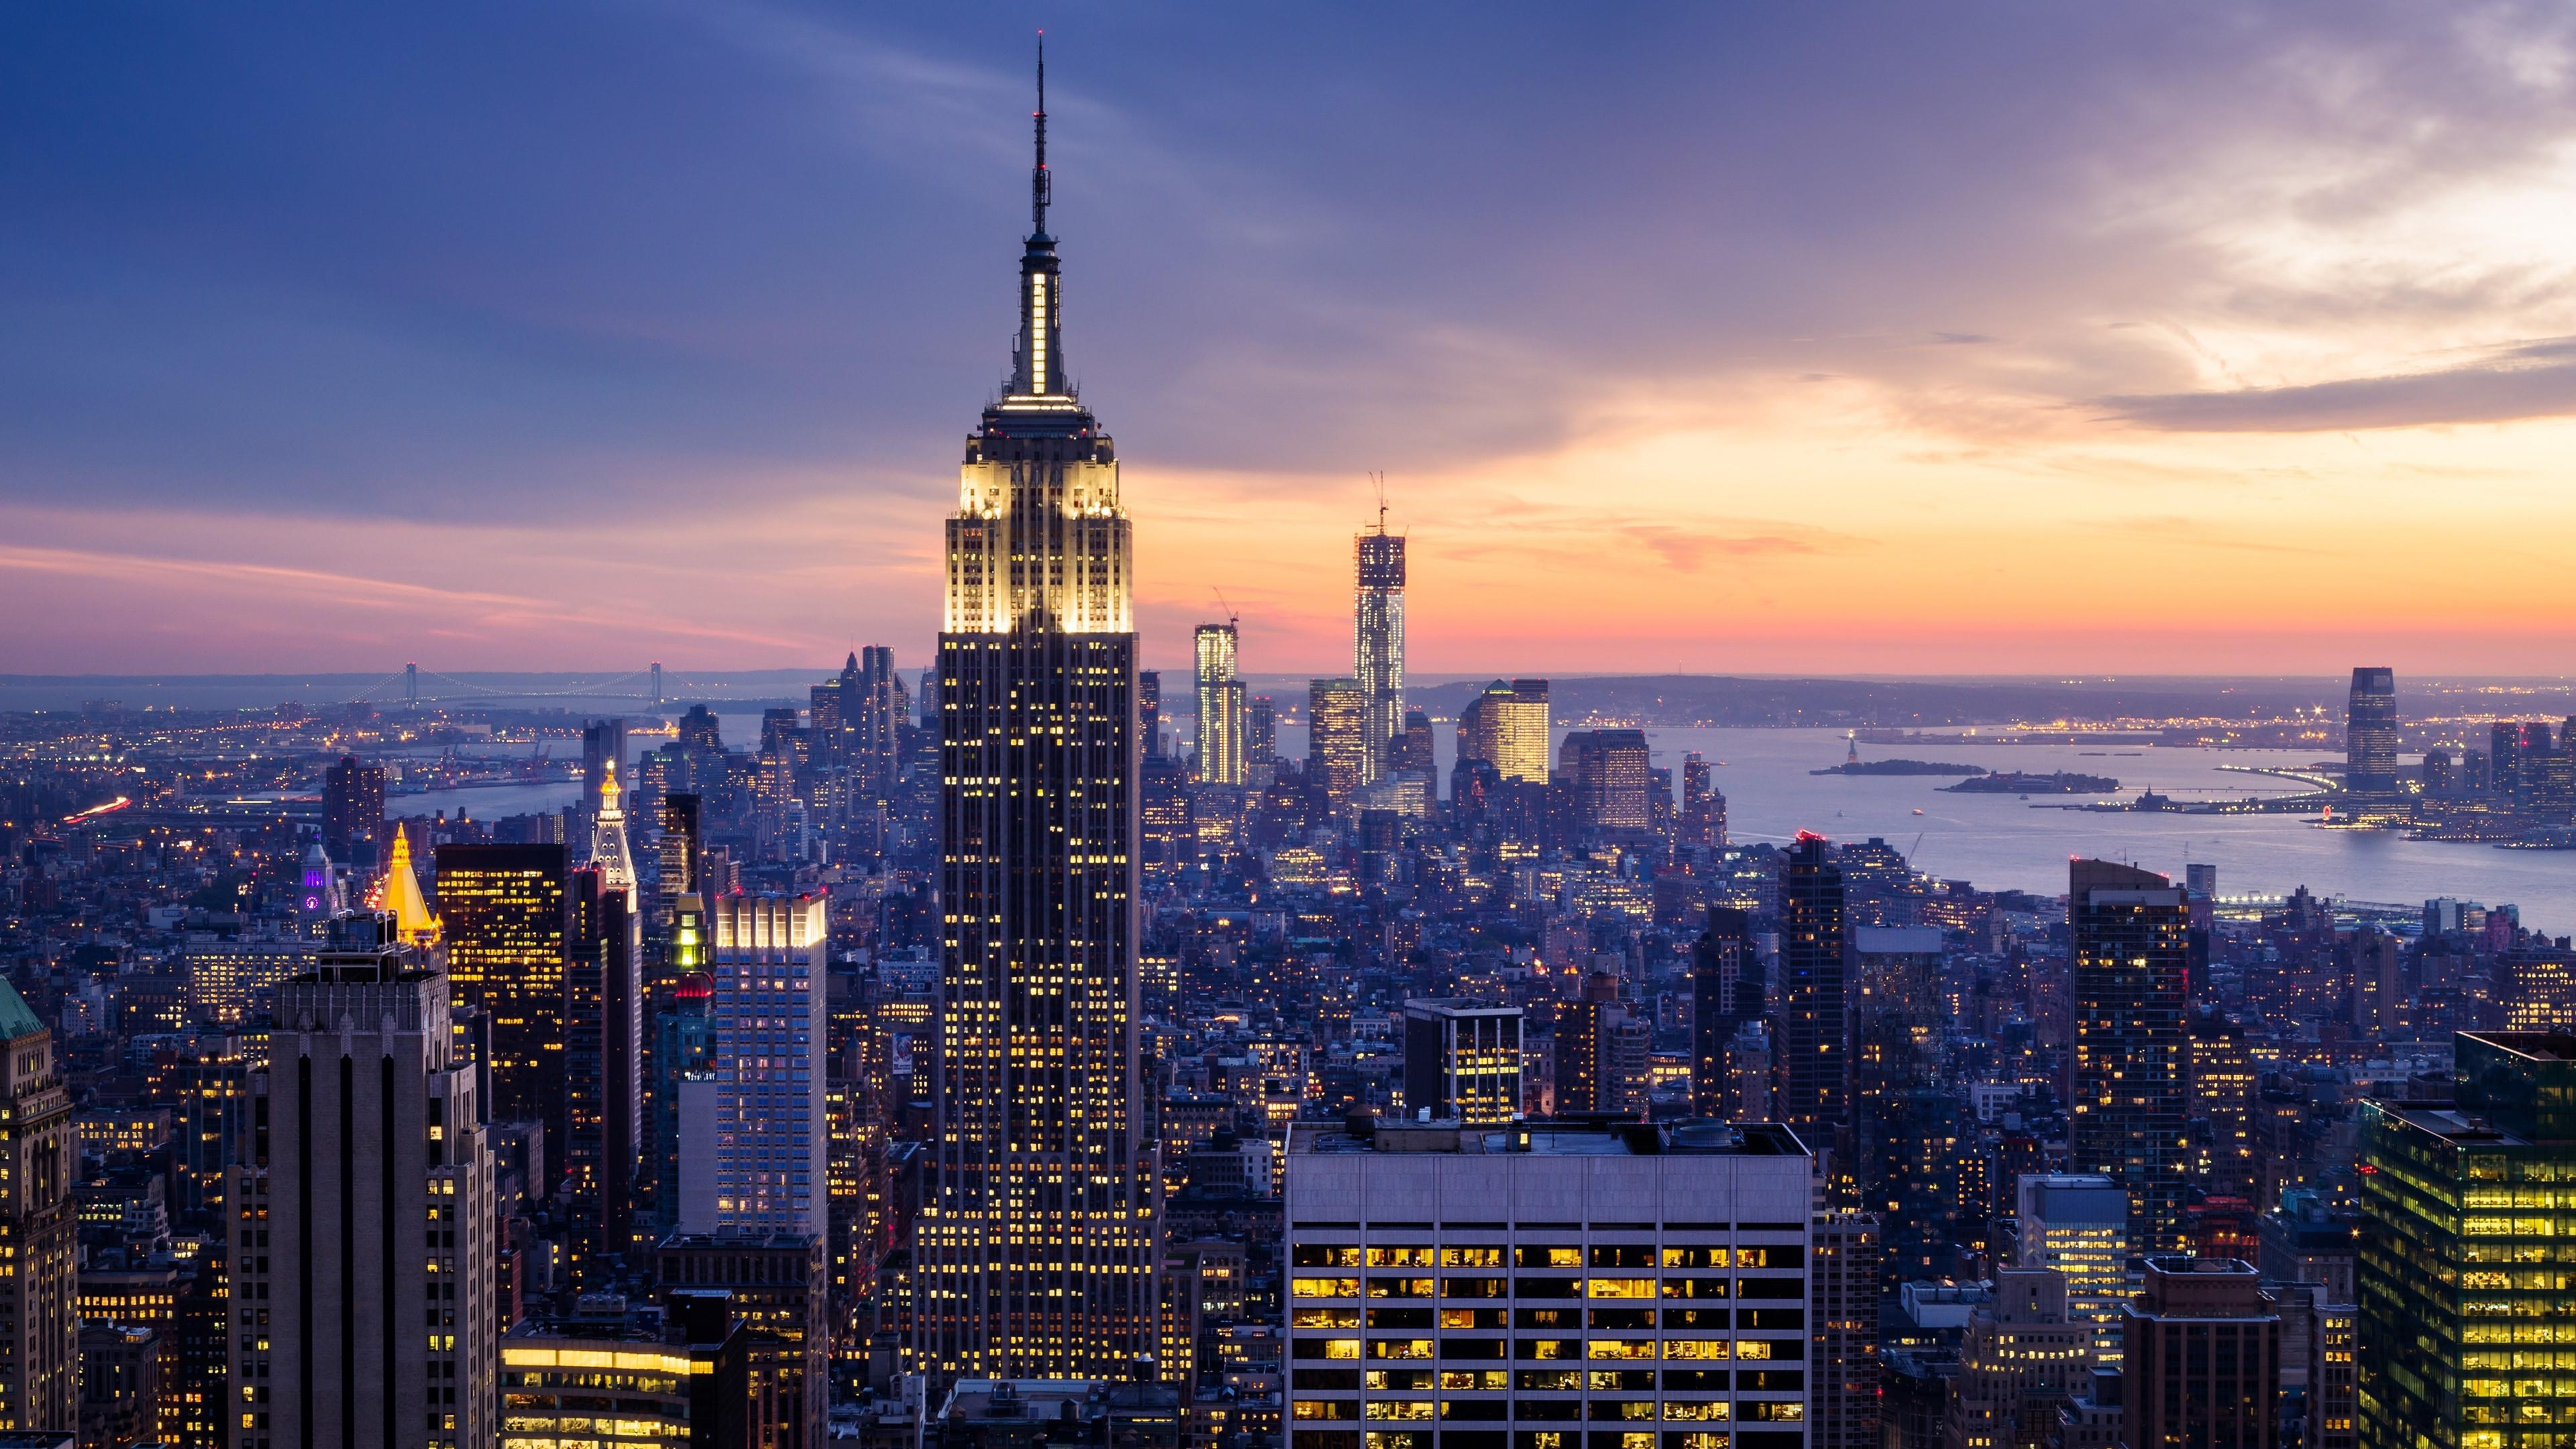 Empire State Building (New York City) wallpaper